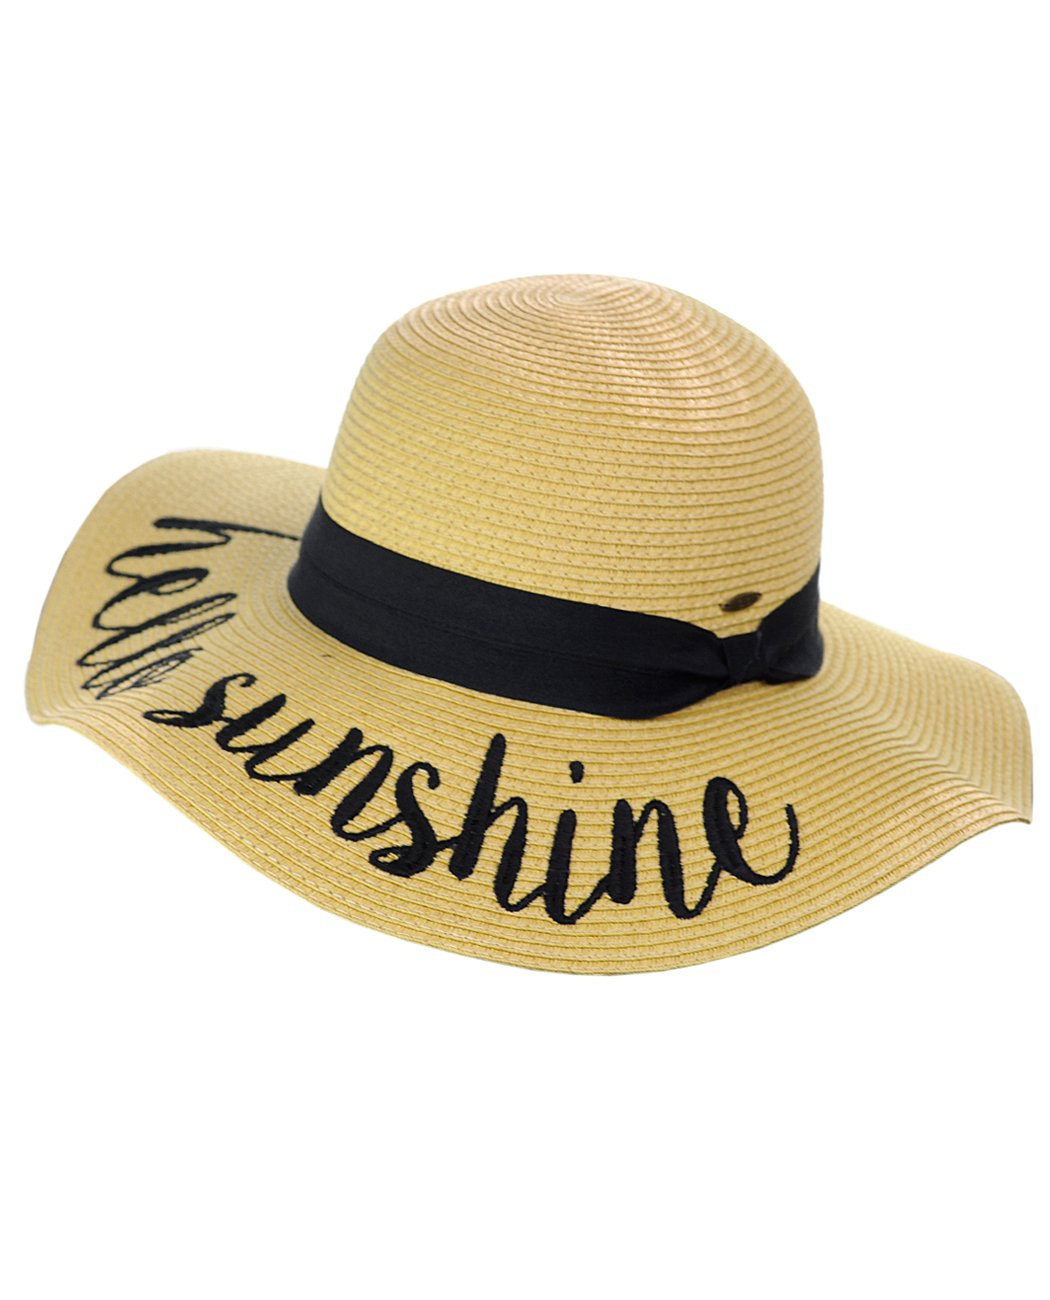 07fcf060f74 C.C Women s Paper Weaved Crushable Beach Embroidered Quote Floppy Brim Sun  Hat